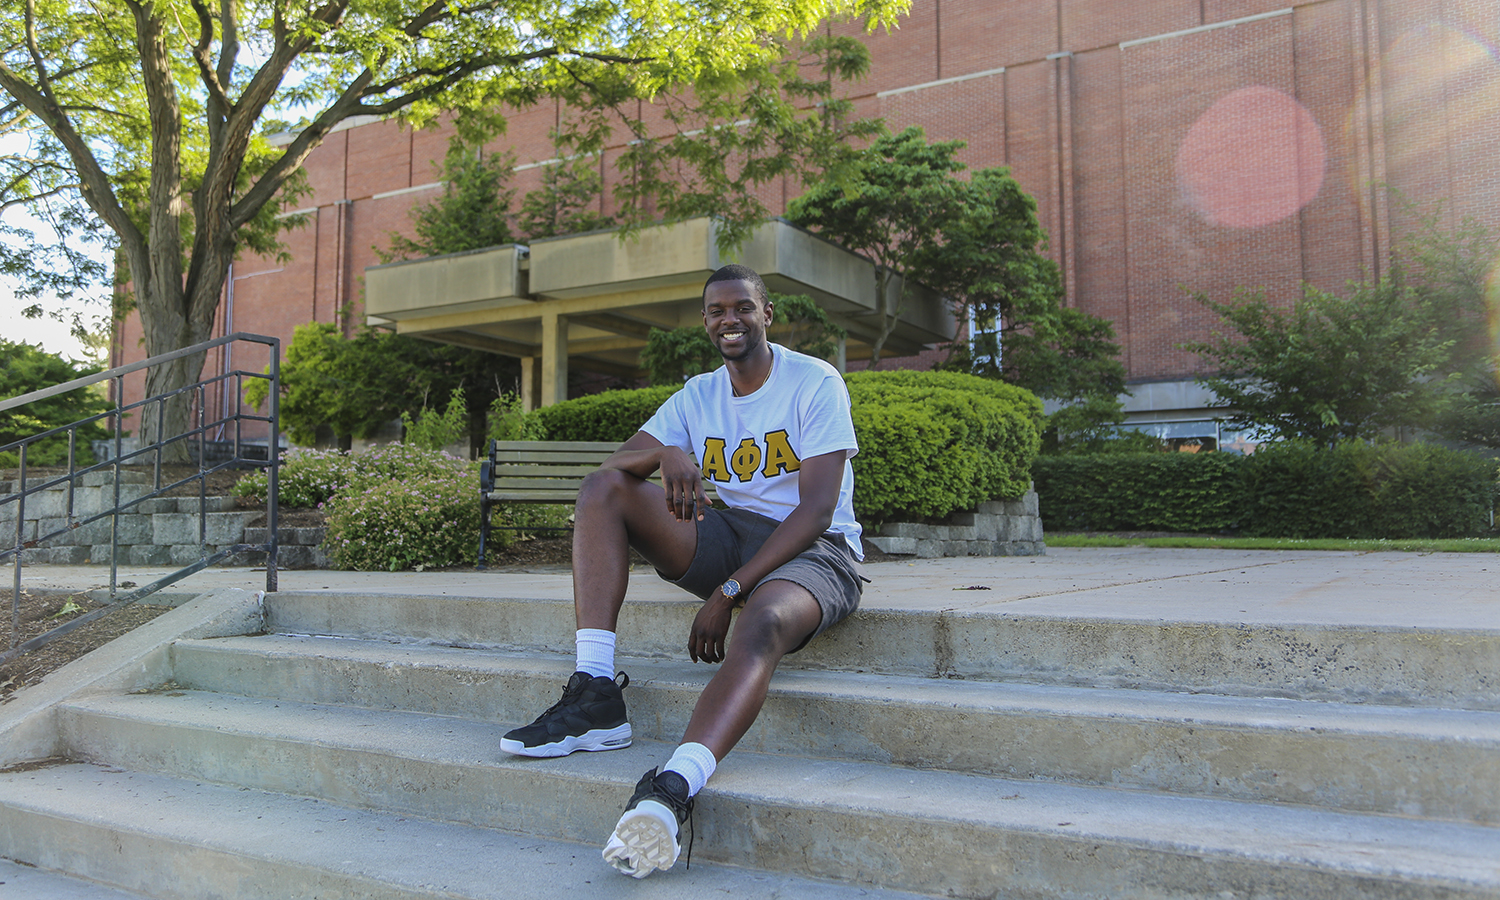 Edens Fleurizard, Student Trustee and Varisty Hobart Basketball player, relaxes outside Bristol Gymnasium. Bristol Gym is his favourite place on campus because of the great times that he has had with his teammates on and off the court. Edens is on campus this summer doing working in the Office of Admissions as a tour guide.